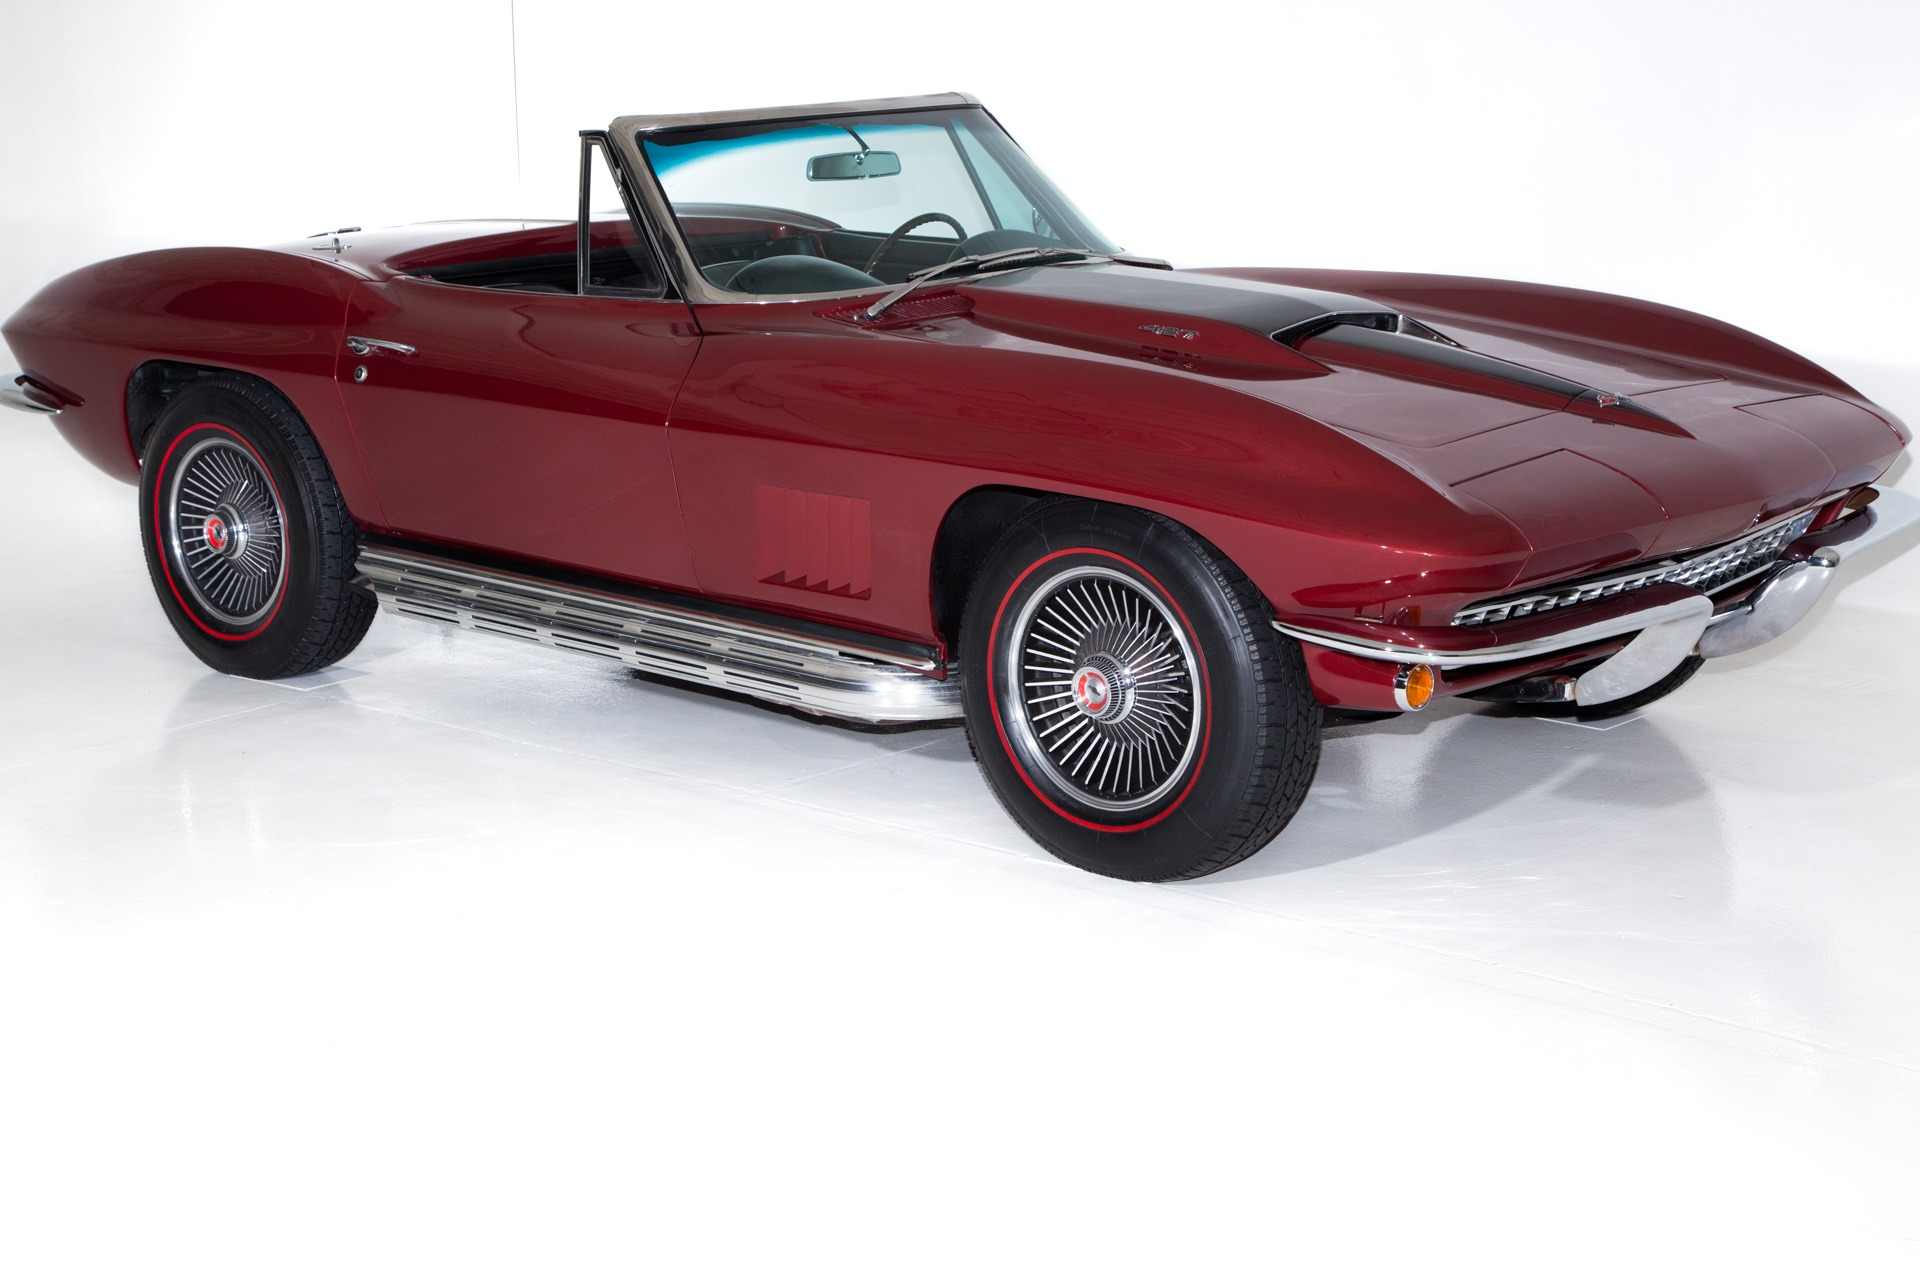 1967 Chevrolet Corvette 427/435 Tri-Power -